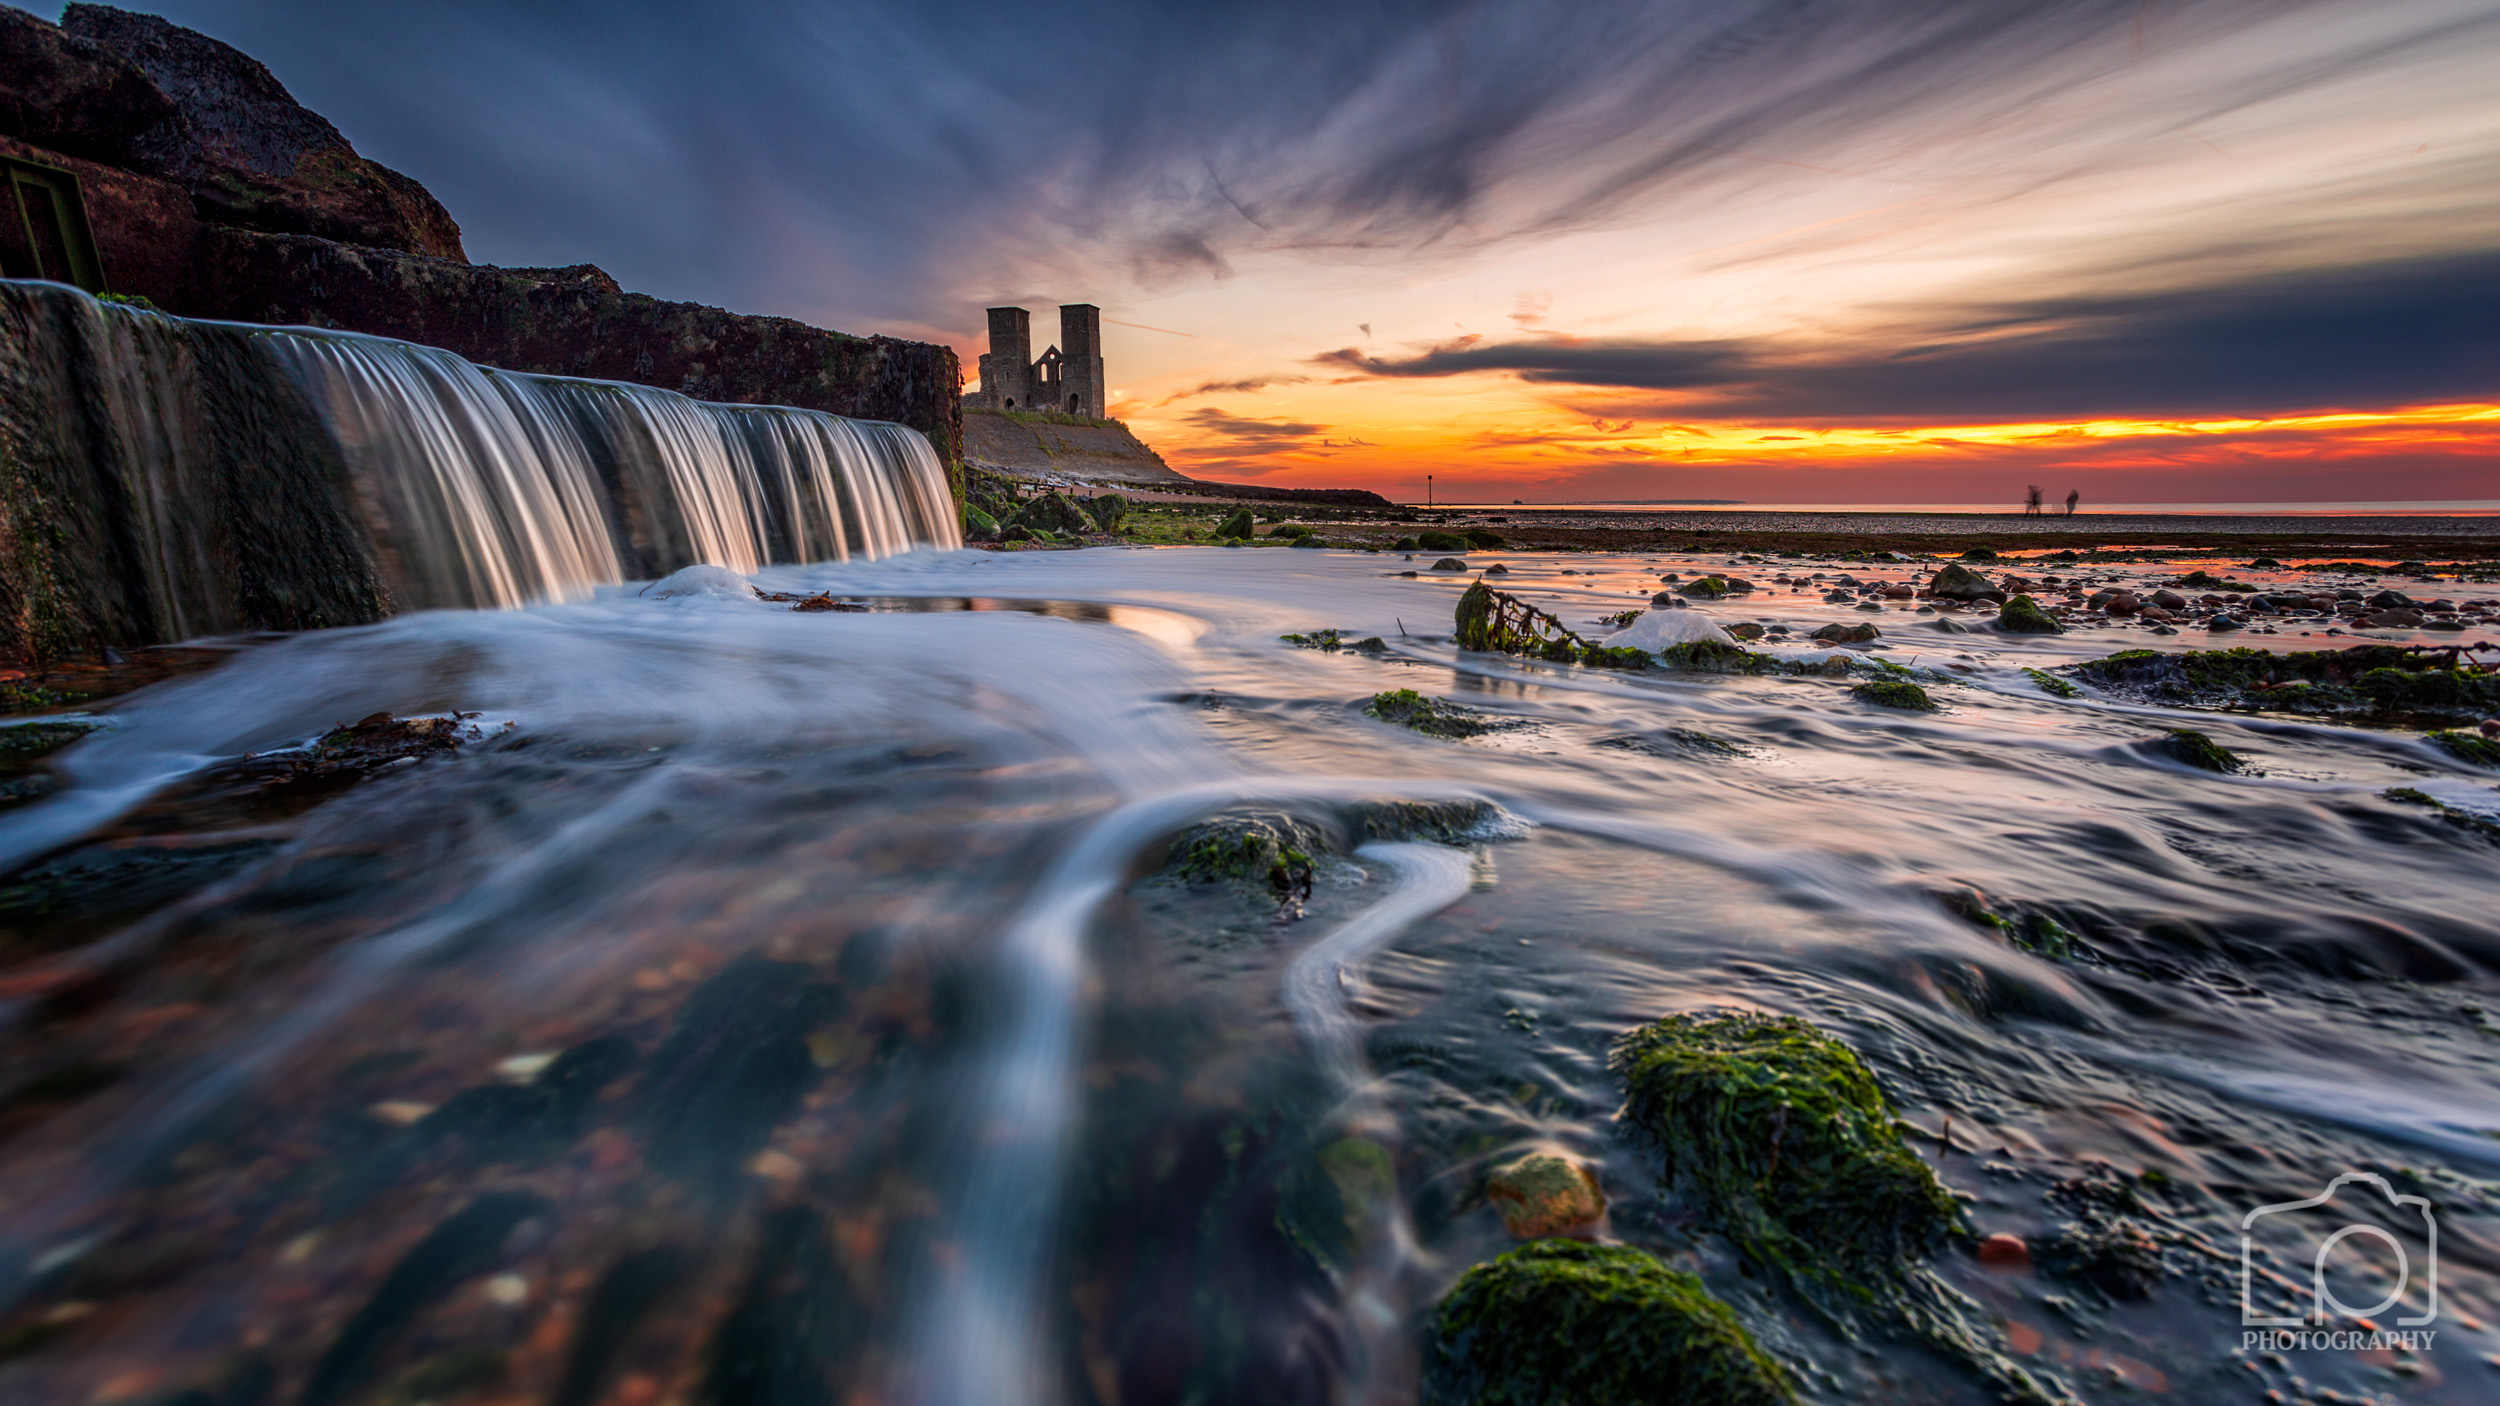 Reculver Towers Sunset